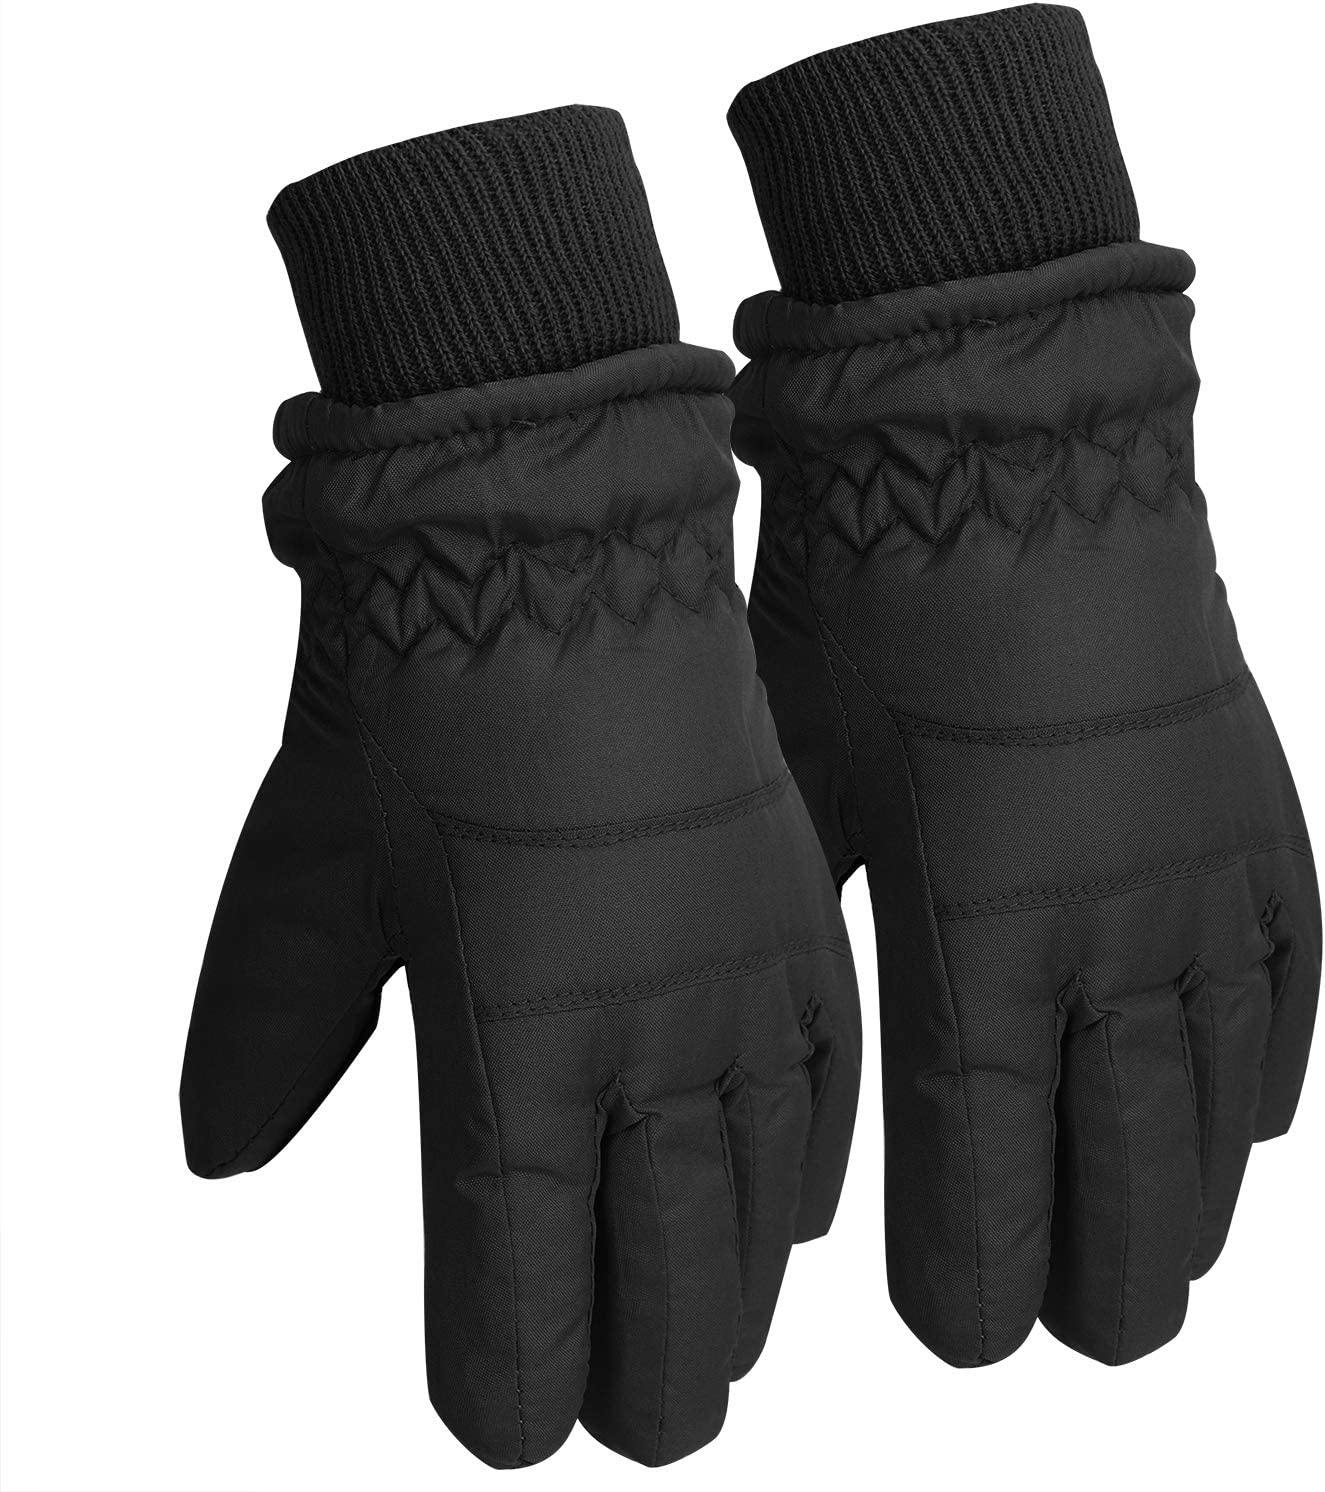 Warm Winter Thermal Gloves Waterproof Snow Gloves Riding Mittens for Boys Grils